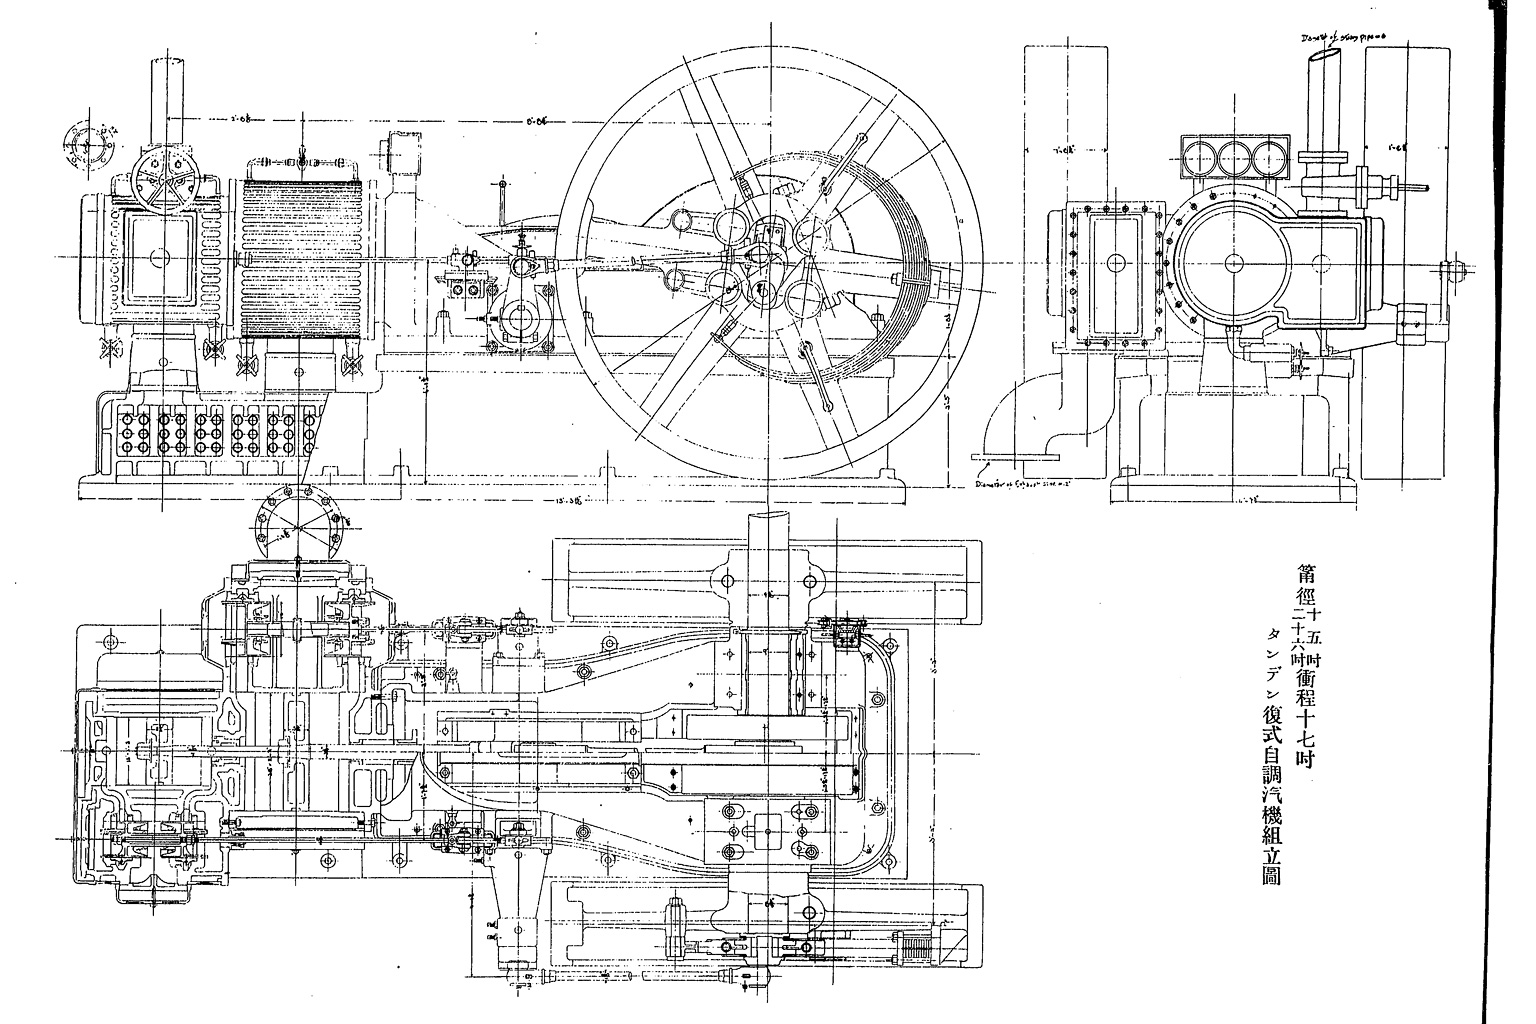 Assembly Drawing of Tandem Self-regulating Steam Engine